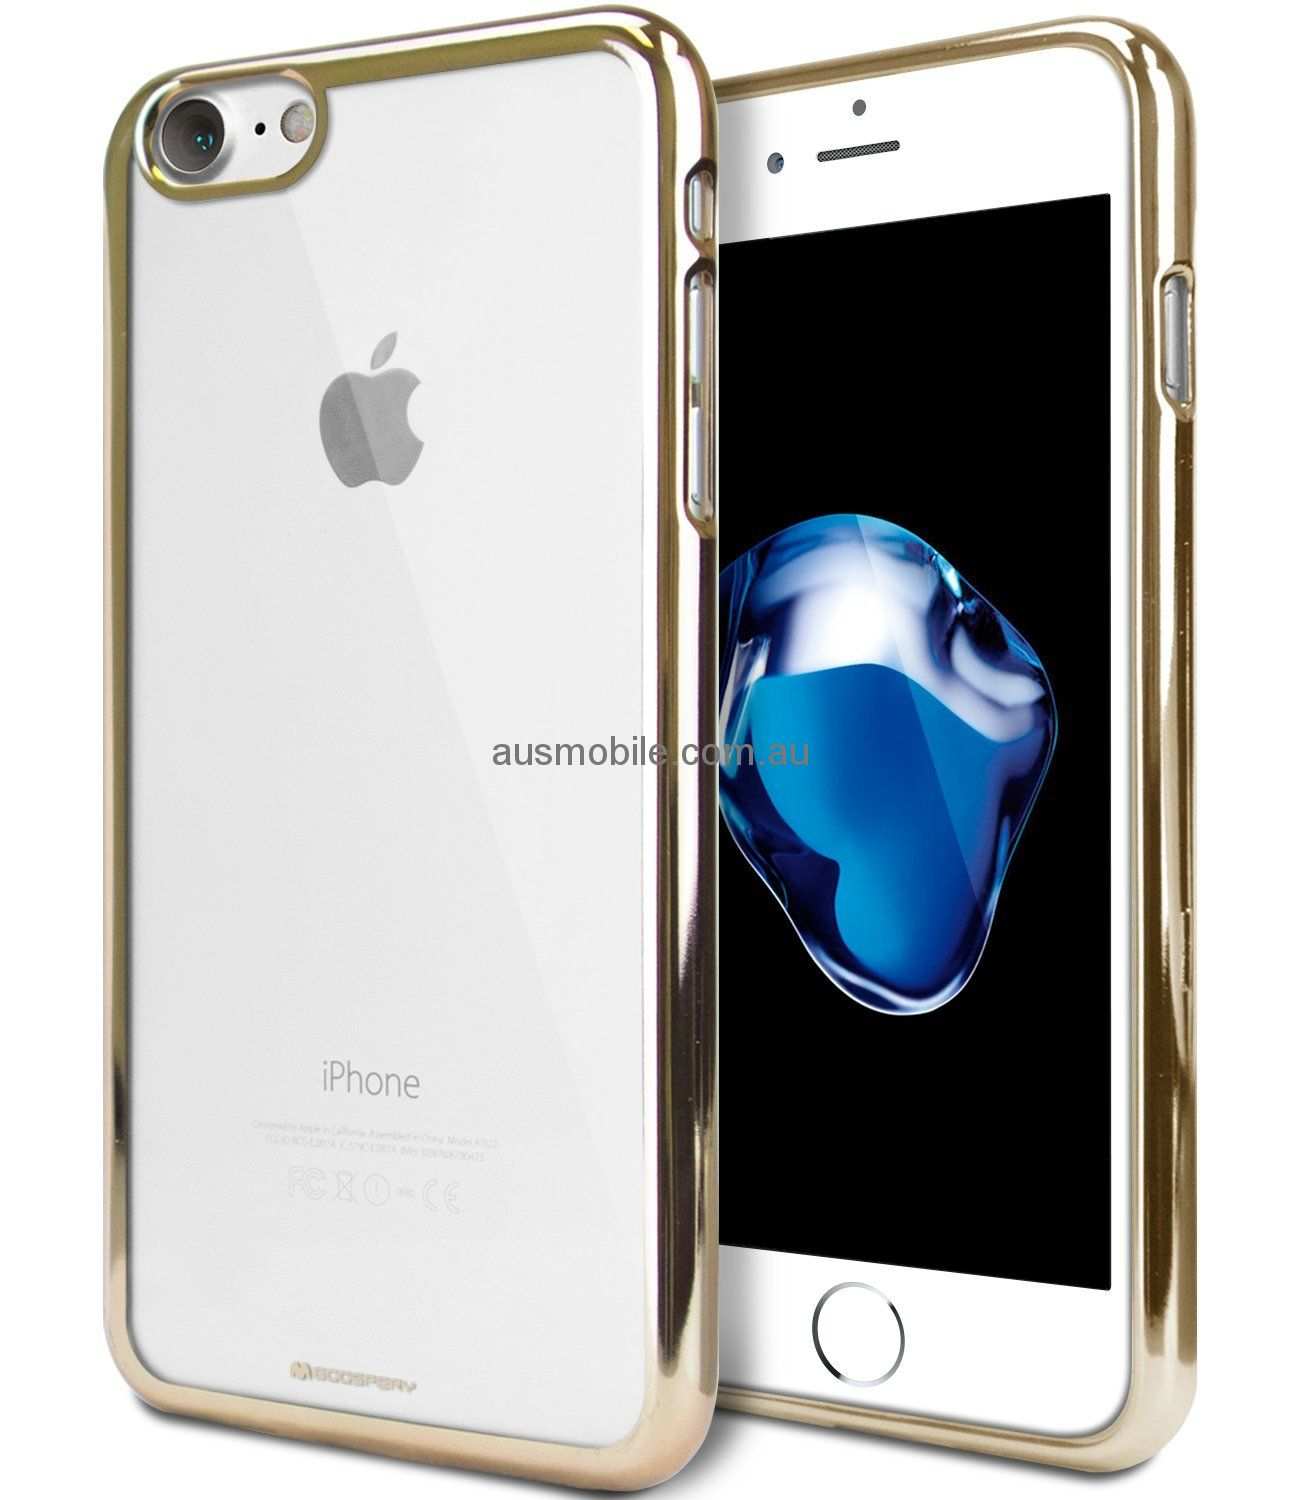 promo code 478f5 ba856 GOOSPERY Ring 2 Jelly Case [Ultra Slim Fit] [Flexible] TPU Bumper Case  [Anti-Discolouring Finish] for Apple iPhone 5 / iPhone 5S / iPhone SE - GOLD